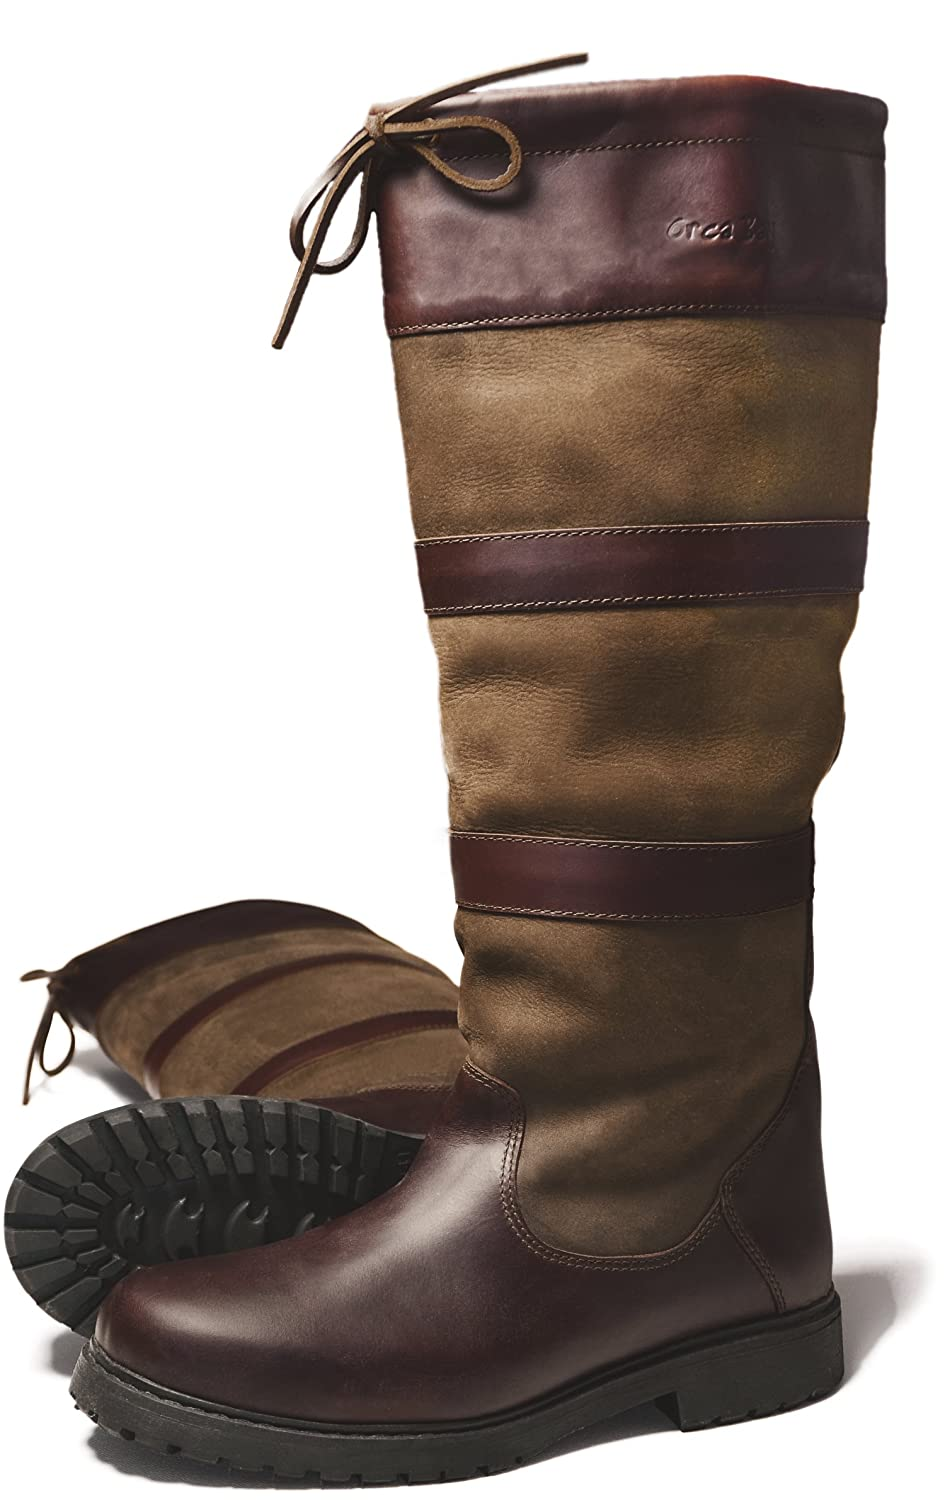 345aab4f321c3 orkney leather country boot: Amazon.co.uk: Shoes & Bags